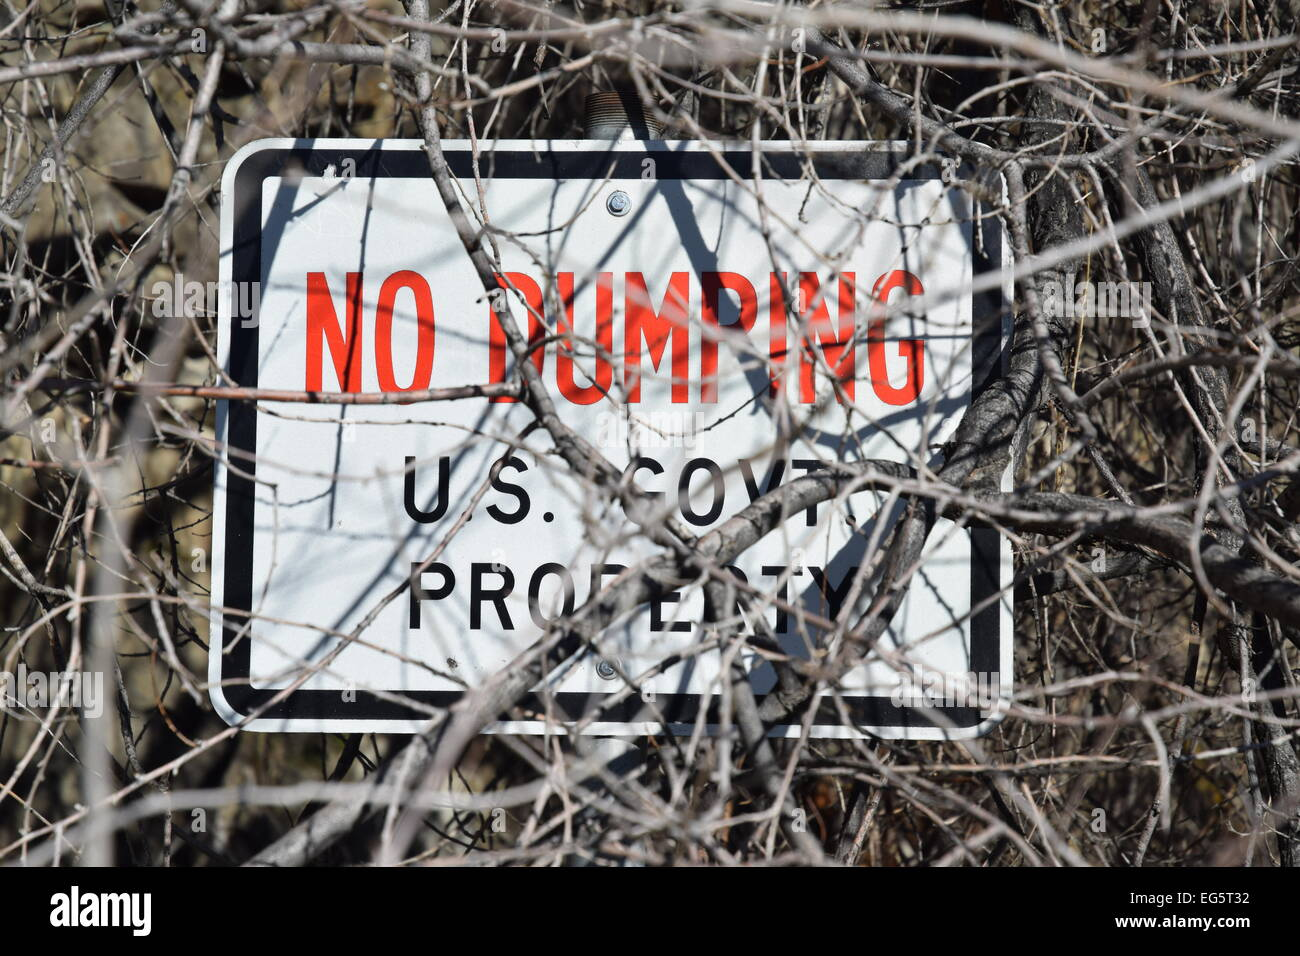 No dumping sign. - Stock Image